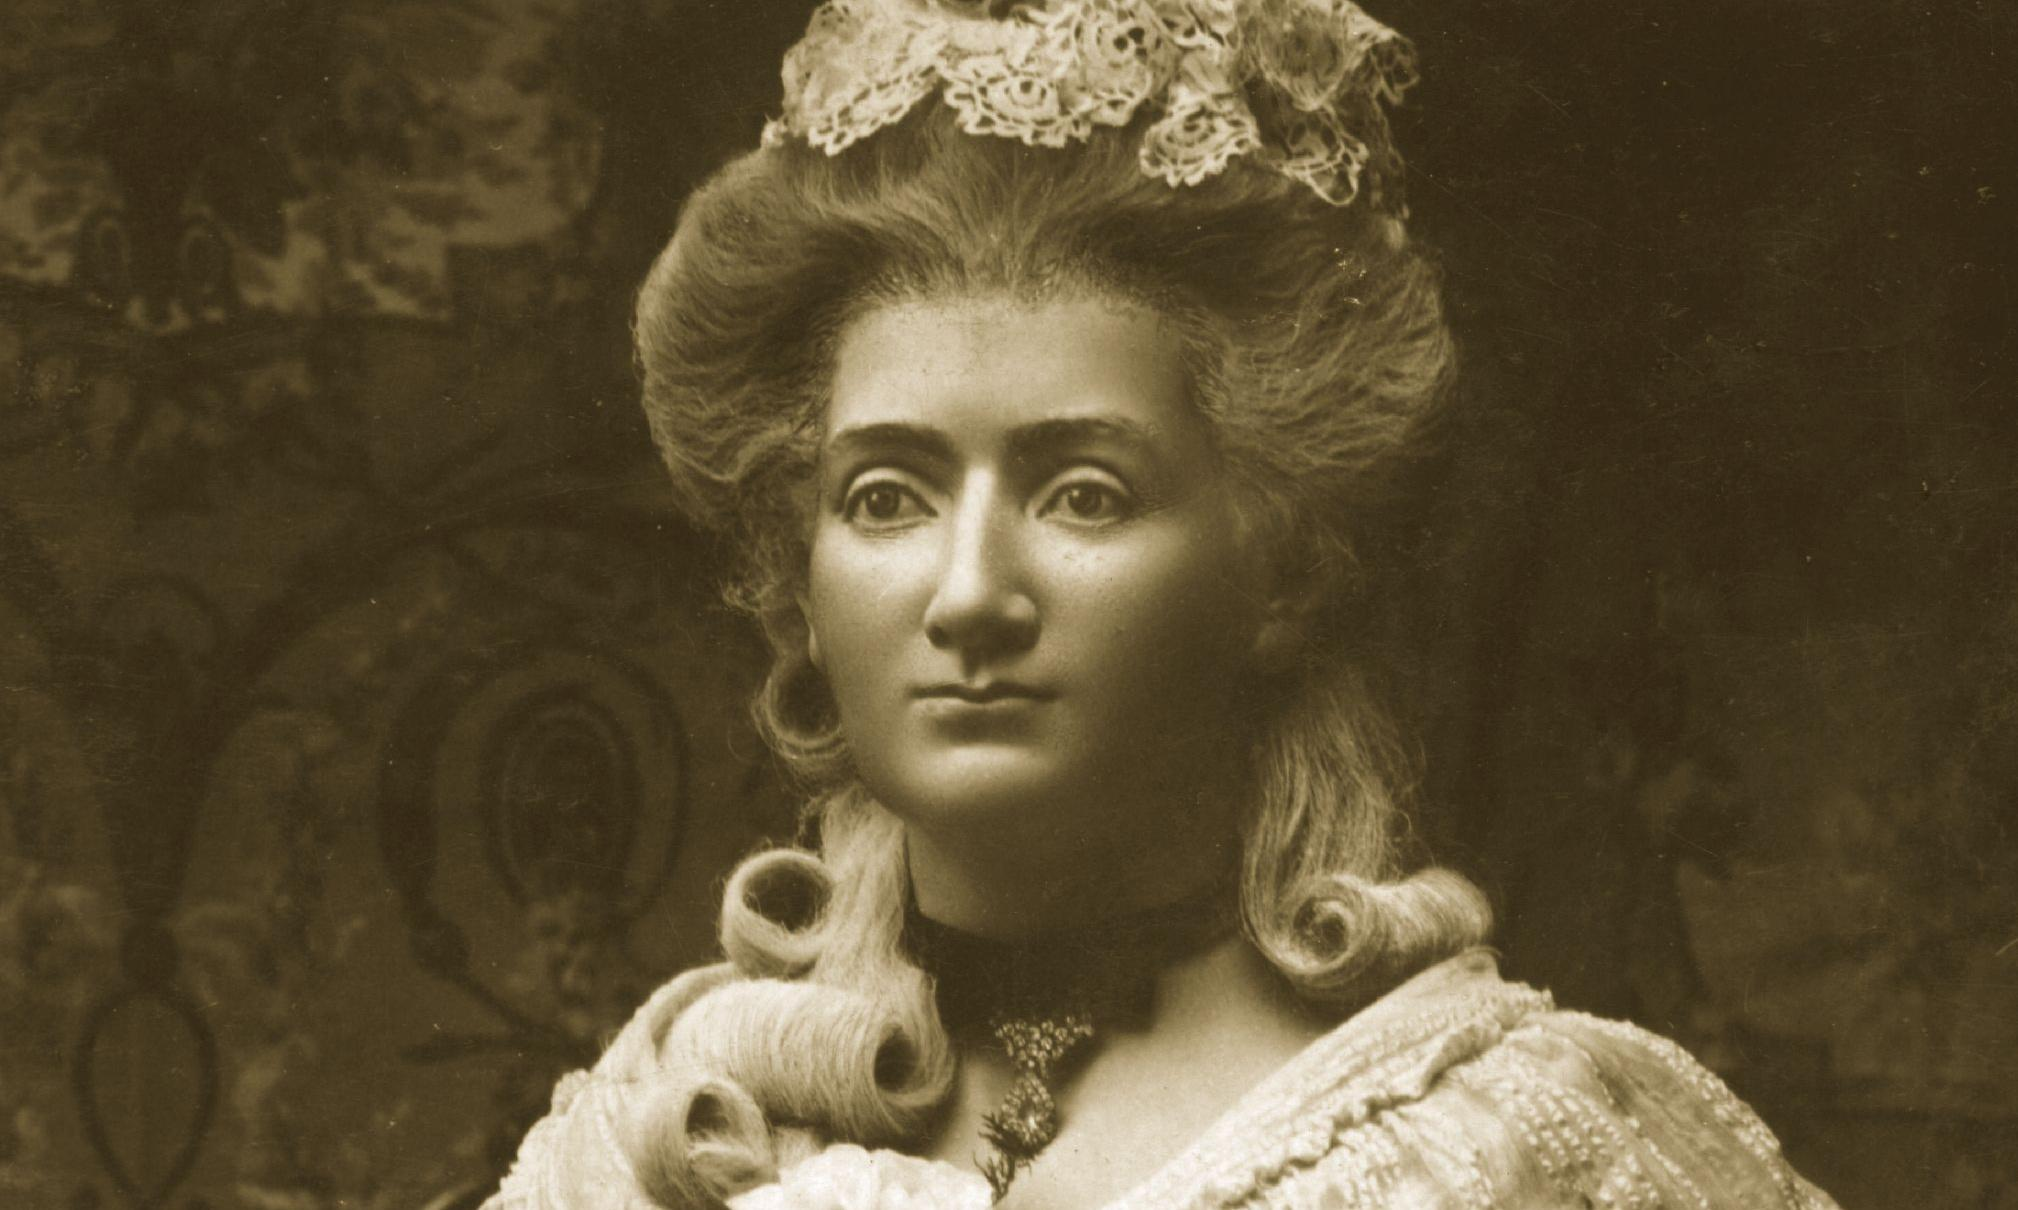 Madame Tussaud: the astounding tale of survival behind the woman who made history